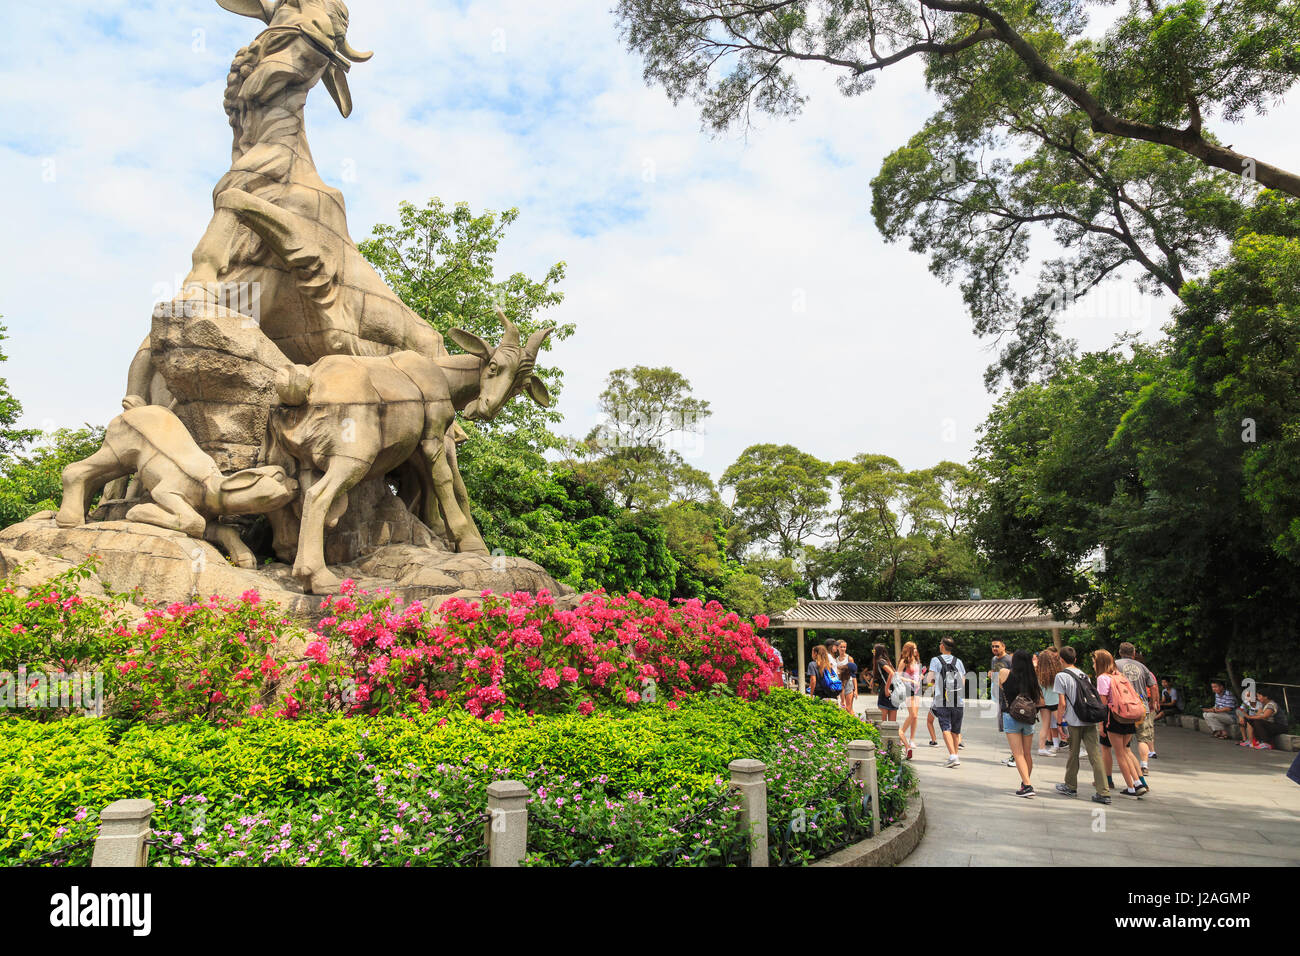 Junior High Students at Five Ram Statue, Yuexiau Park, Guangzhou, China - Stock Image